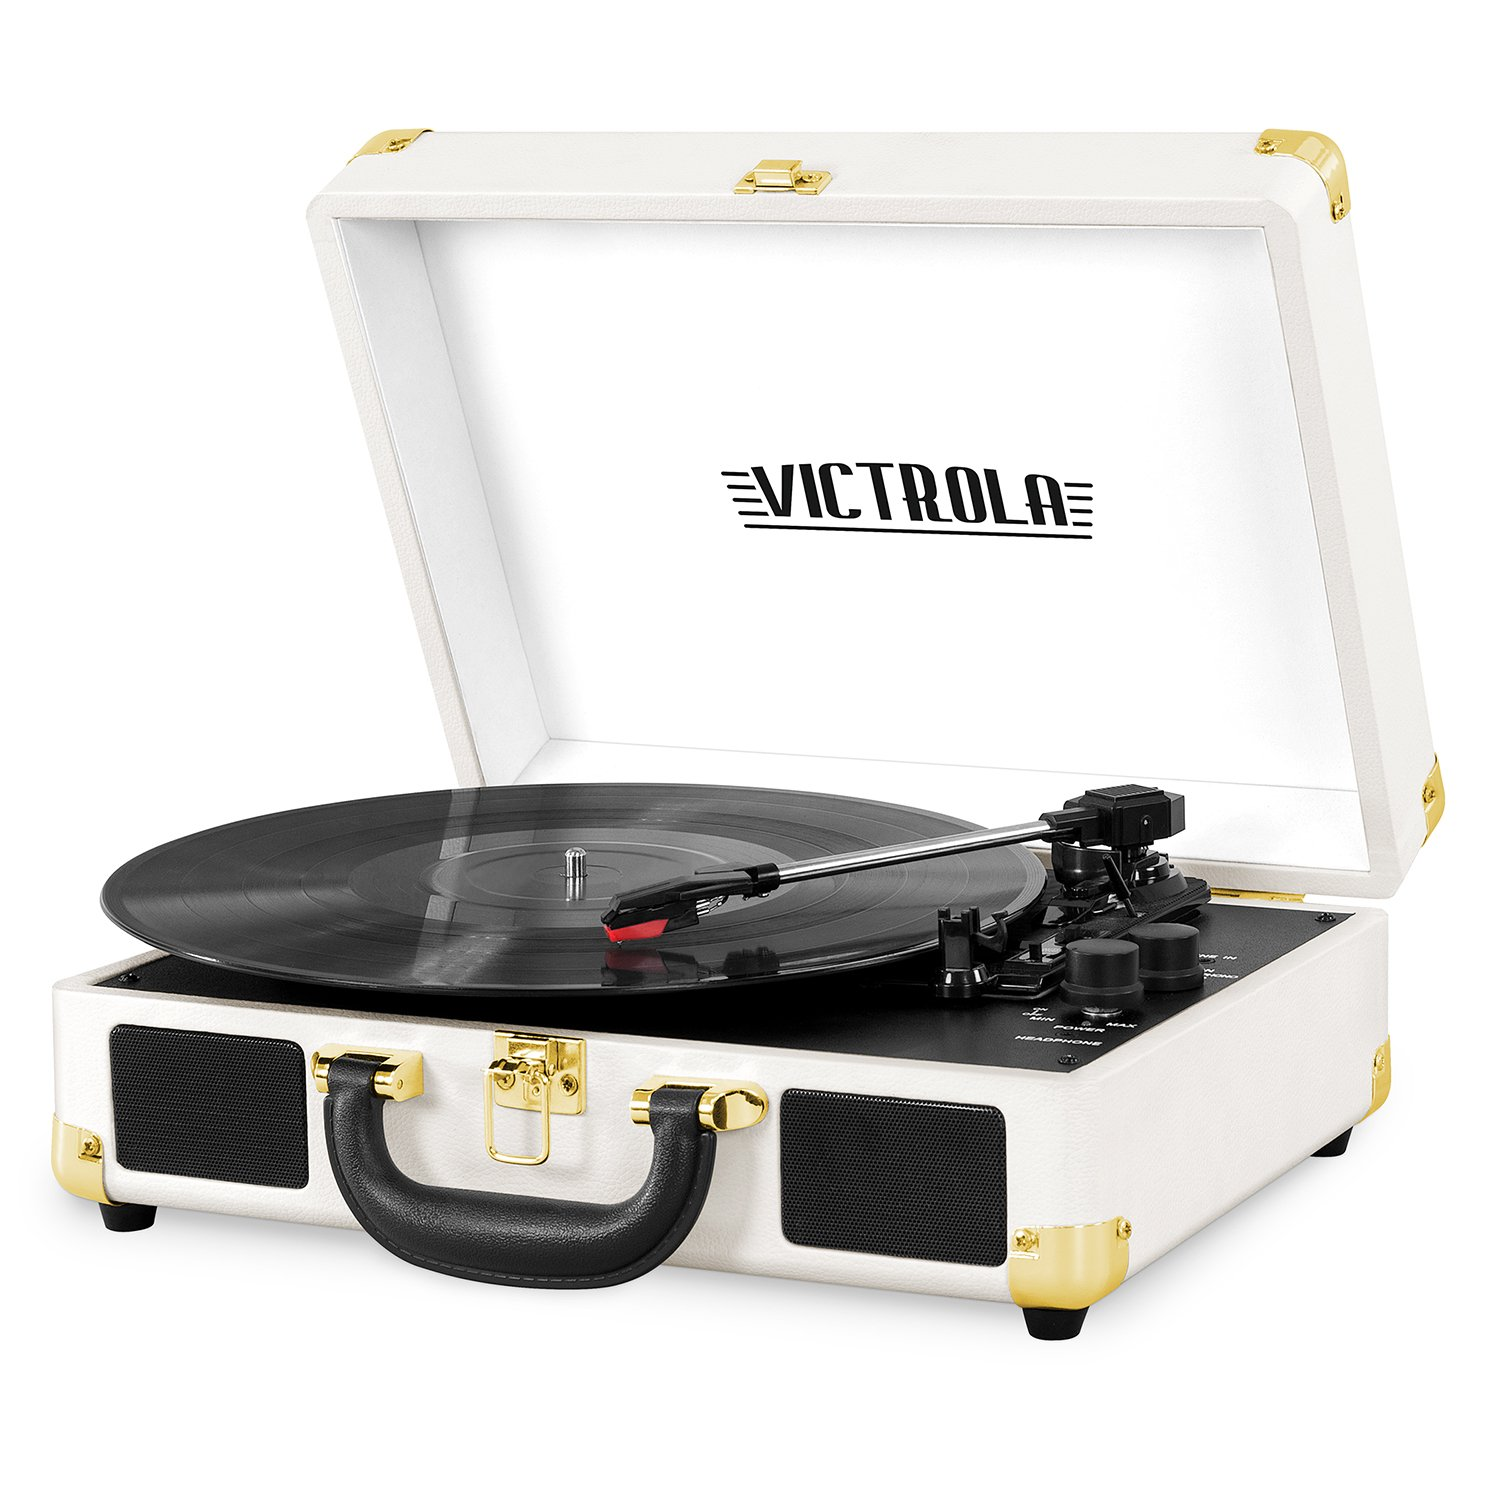 Victrola Vintage 3-Speed Bluetooth Suitcase Turntable with Speakers, White by Victrola